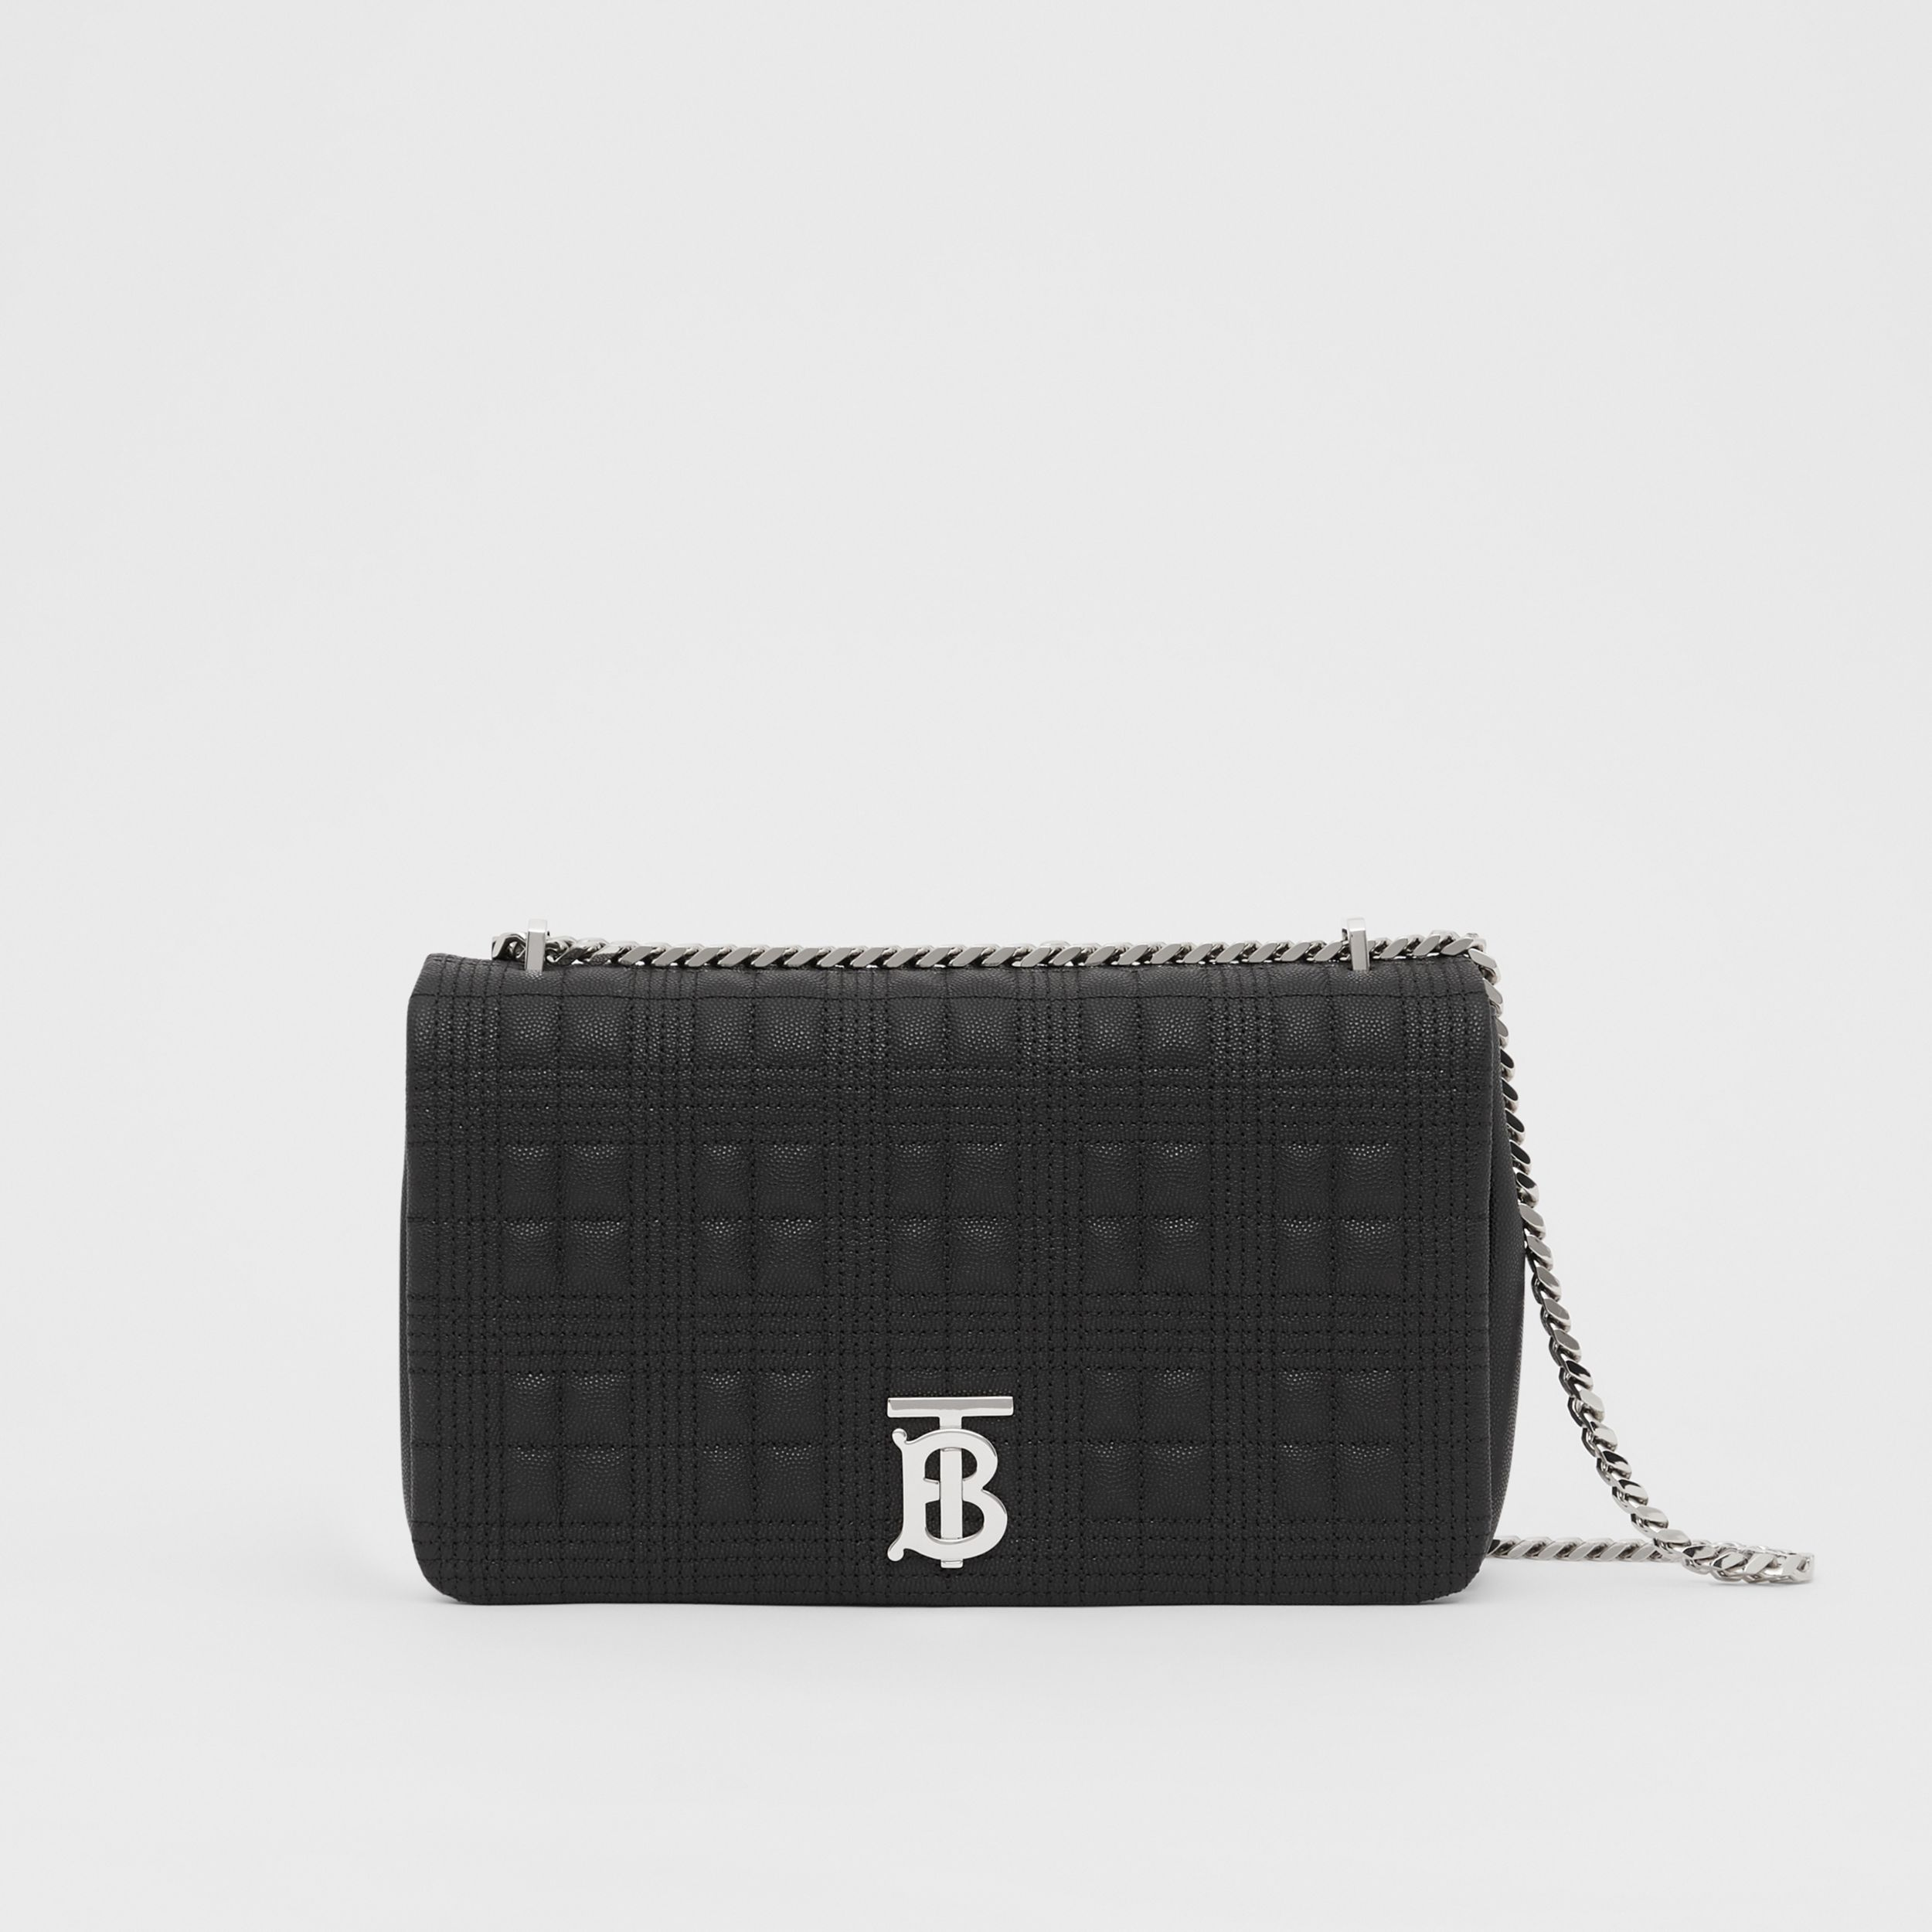 Medium Quilted Grainy Leather Lola Bag in Black - Women | Burberry - 1